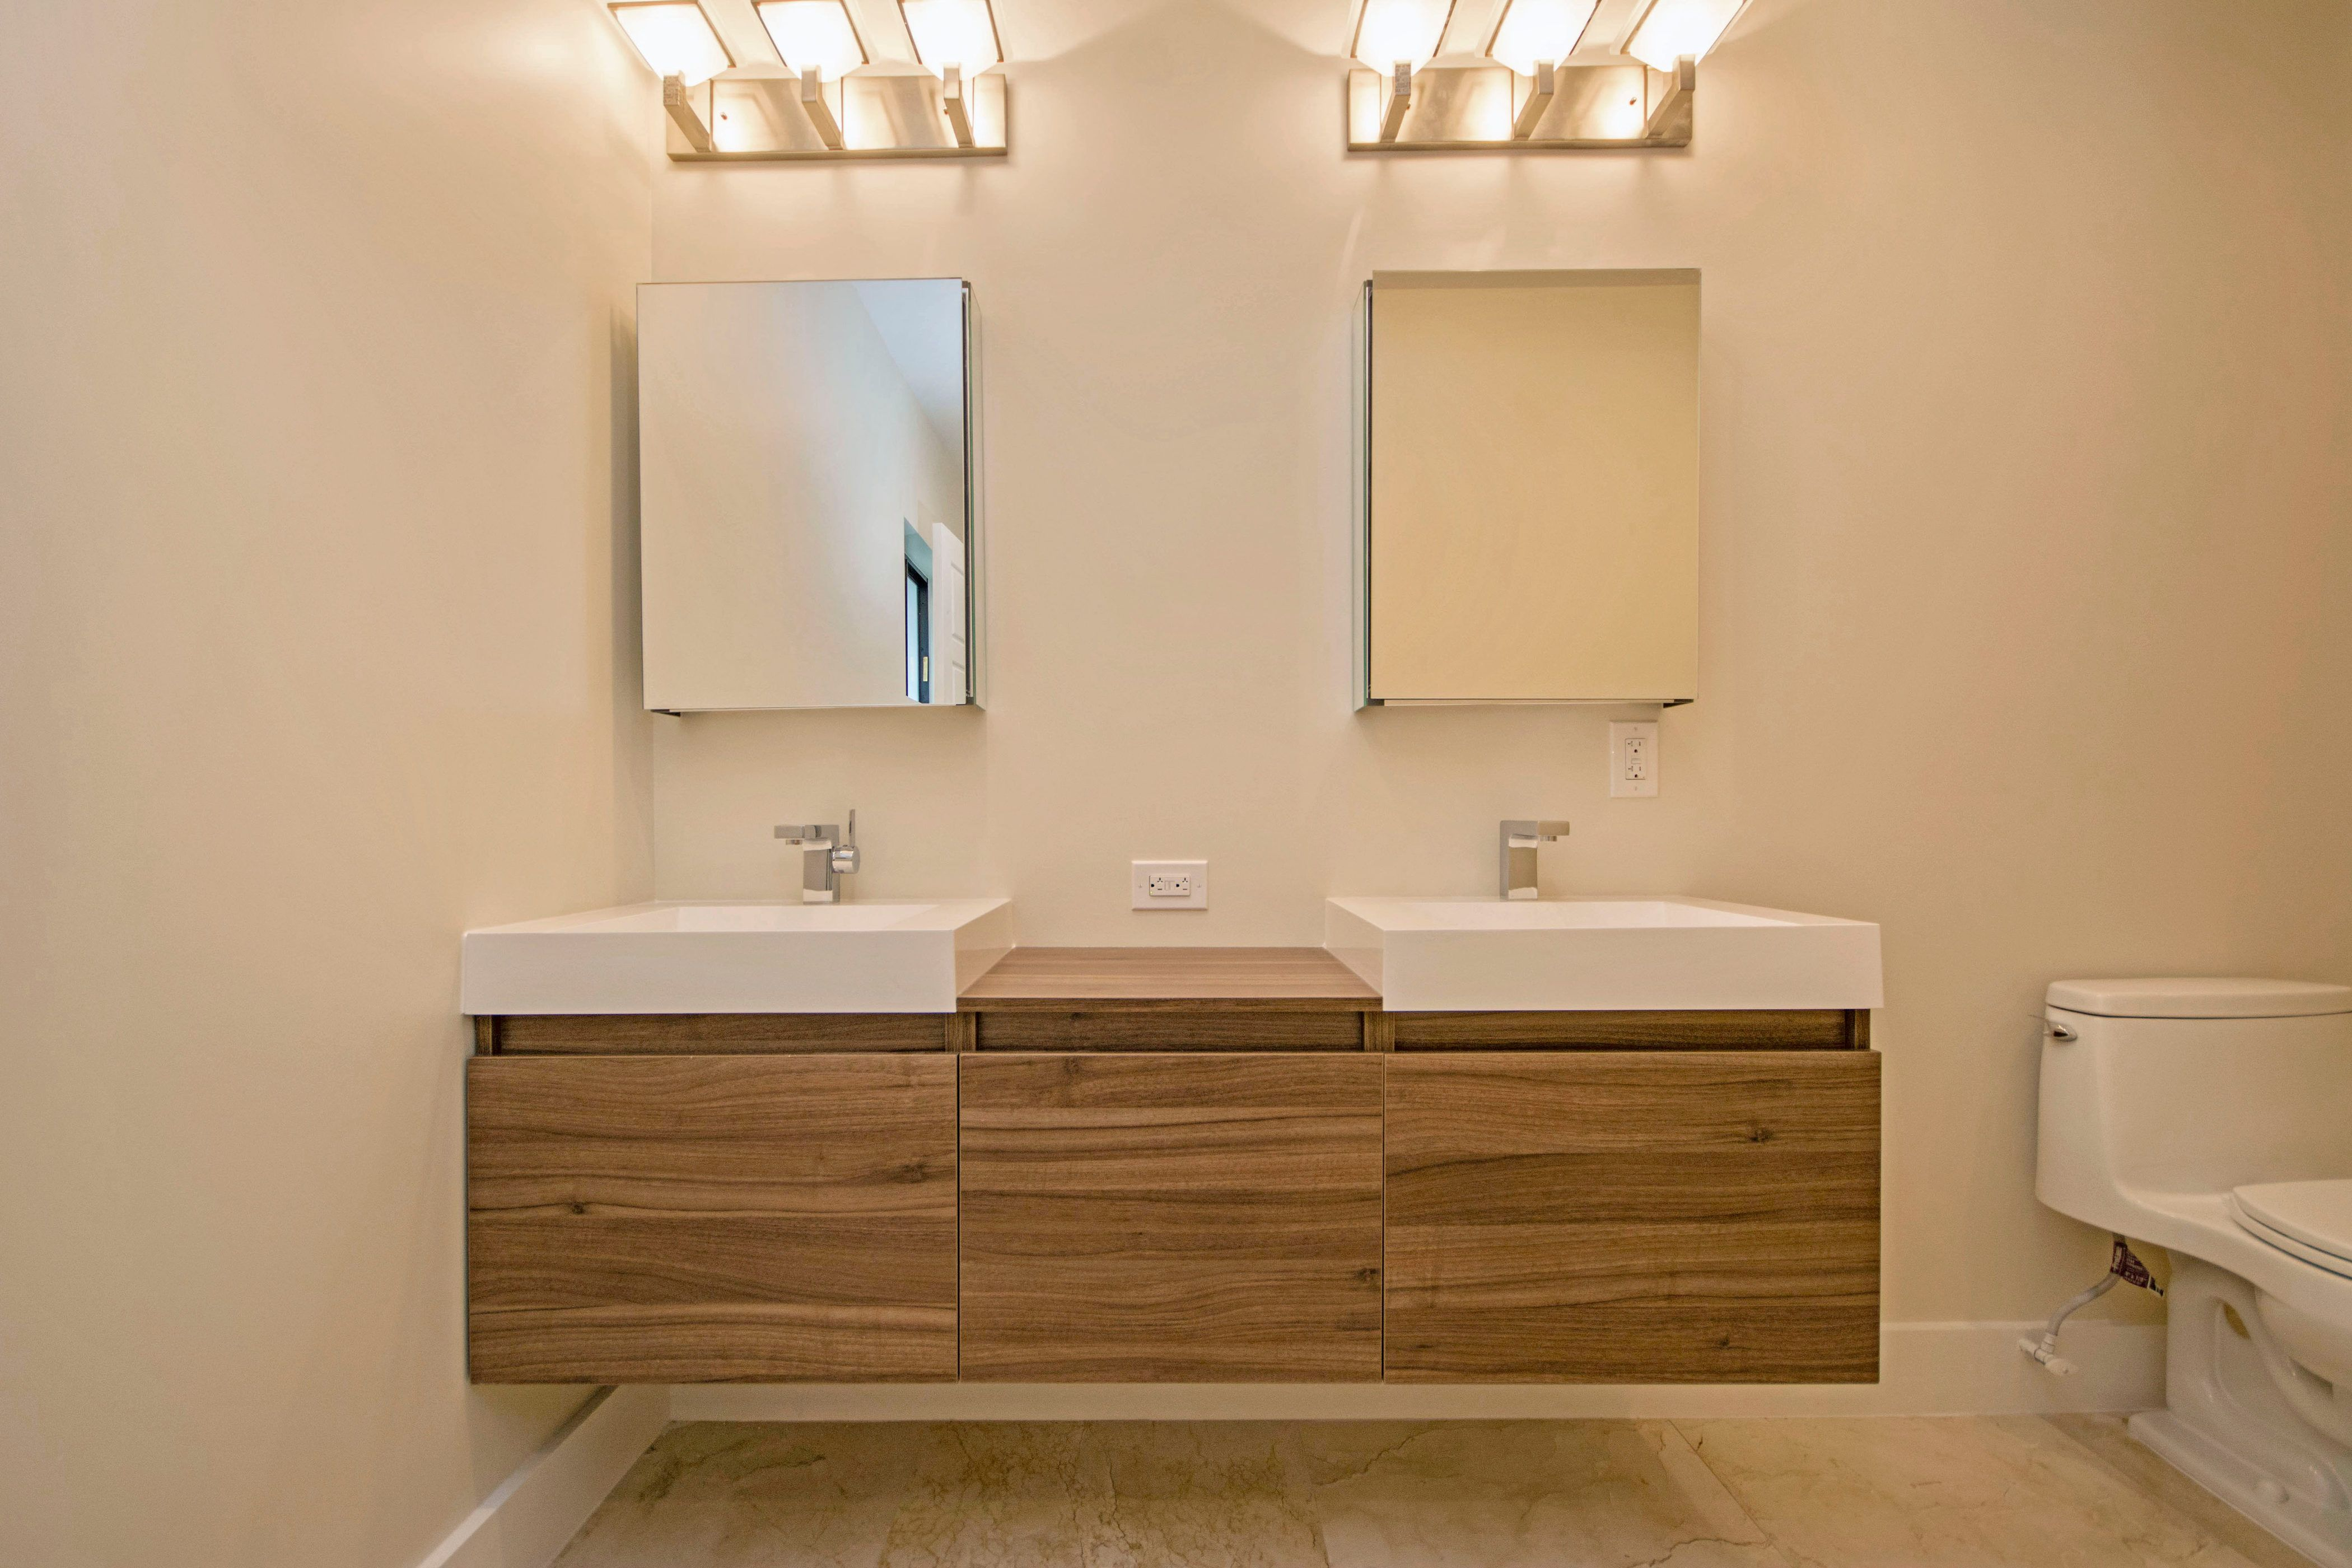 Our Most Popular Double Sink Bathroom Vanity Available At